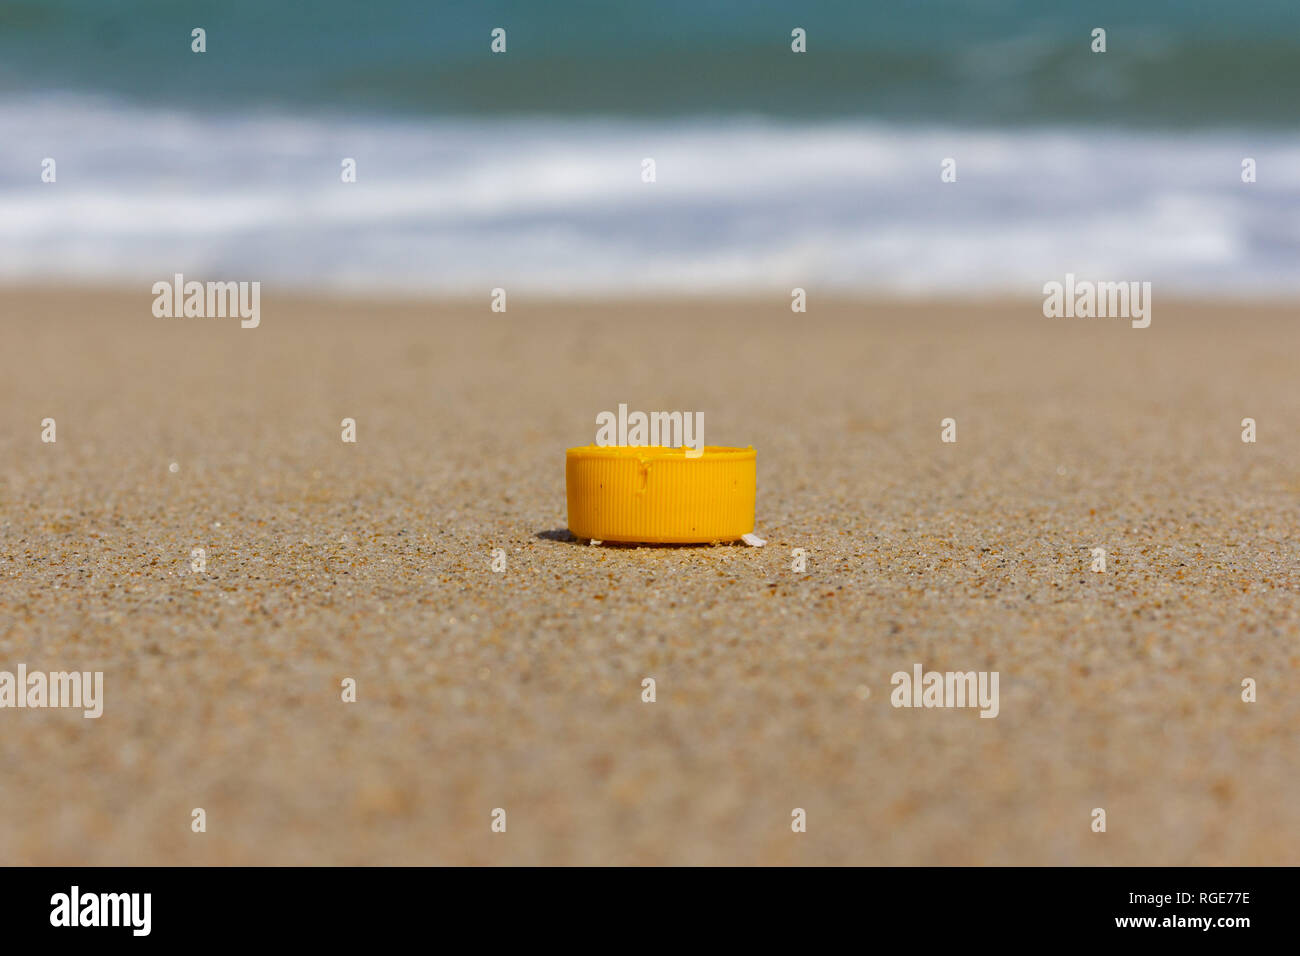 Beach pollution, plastic and waste from ocean on the beach - Stock Image